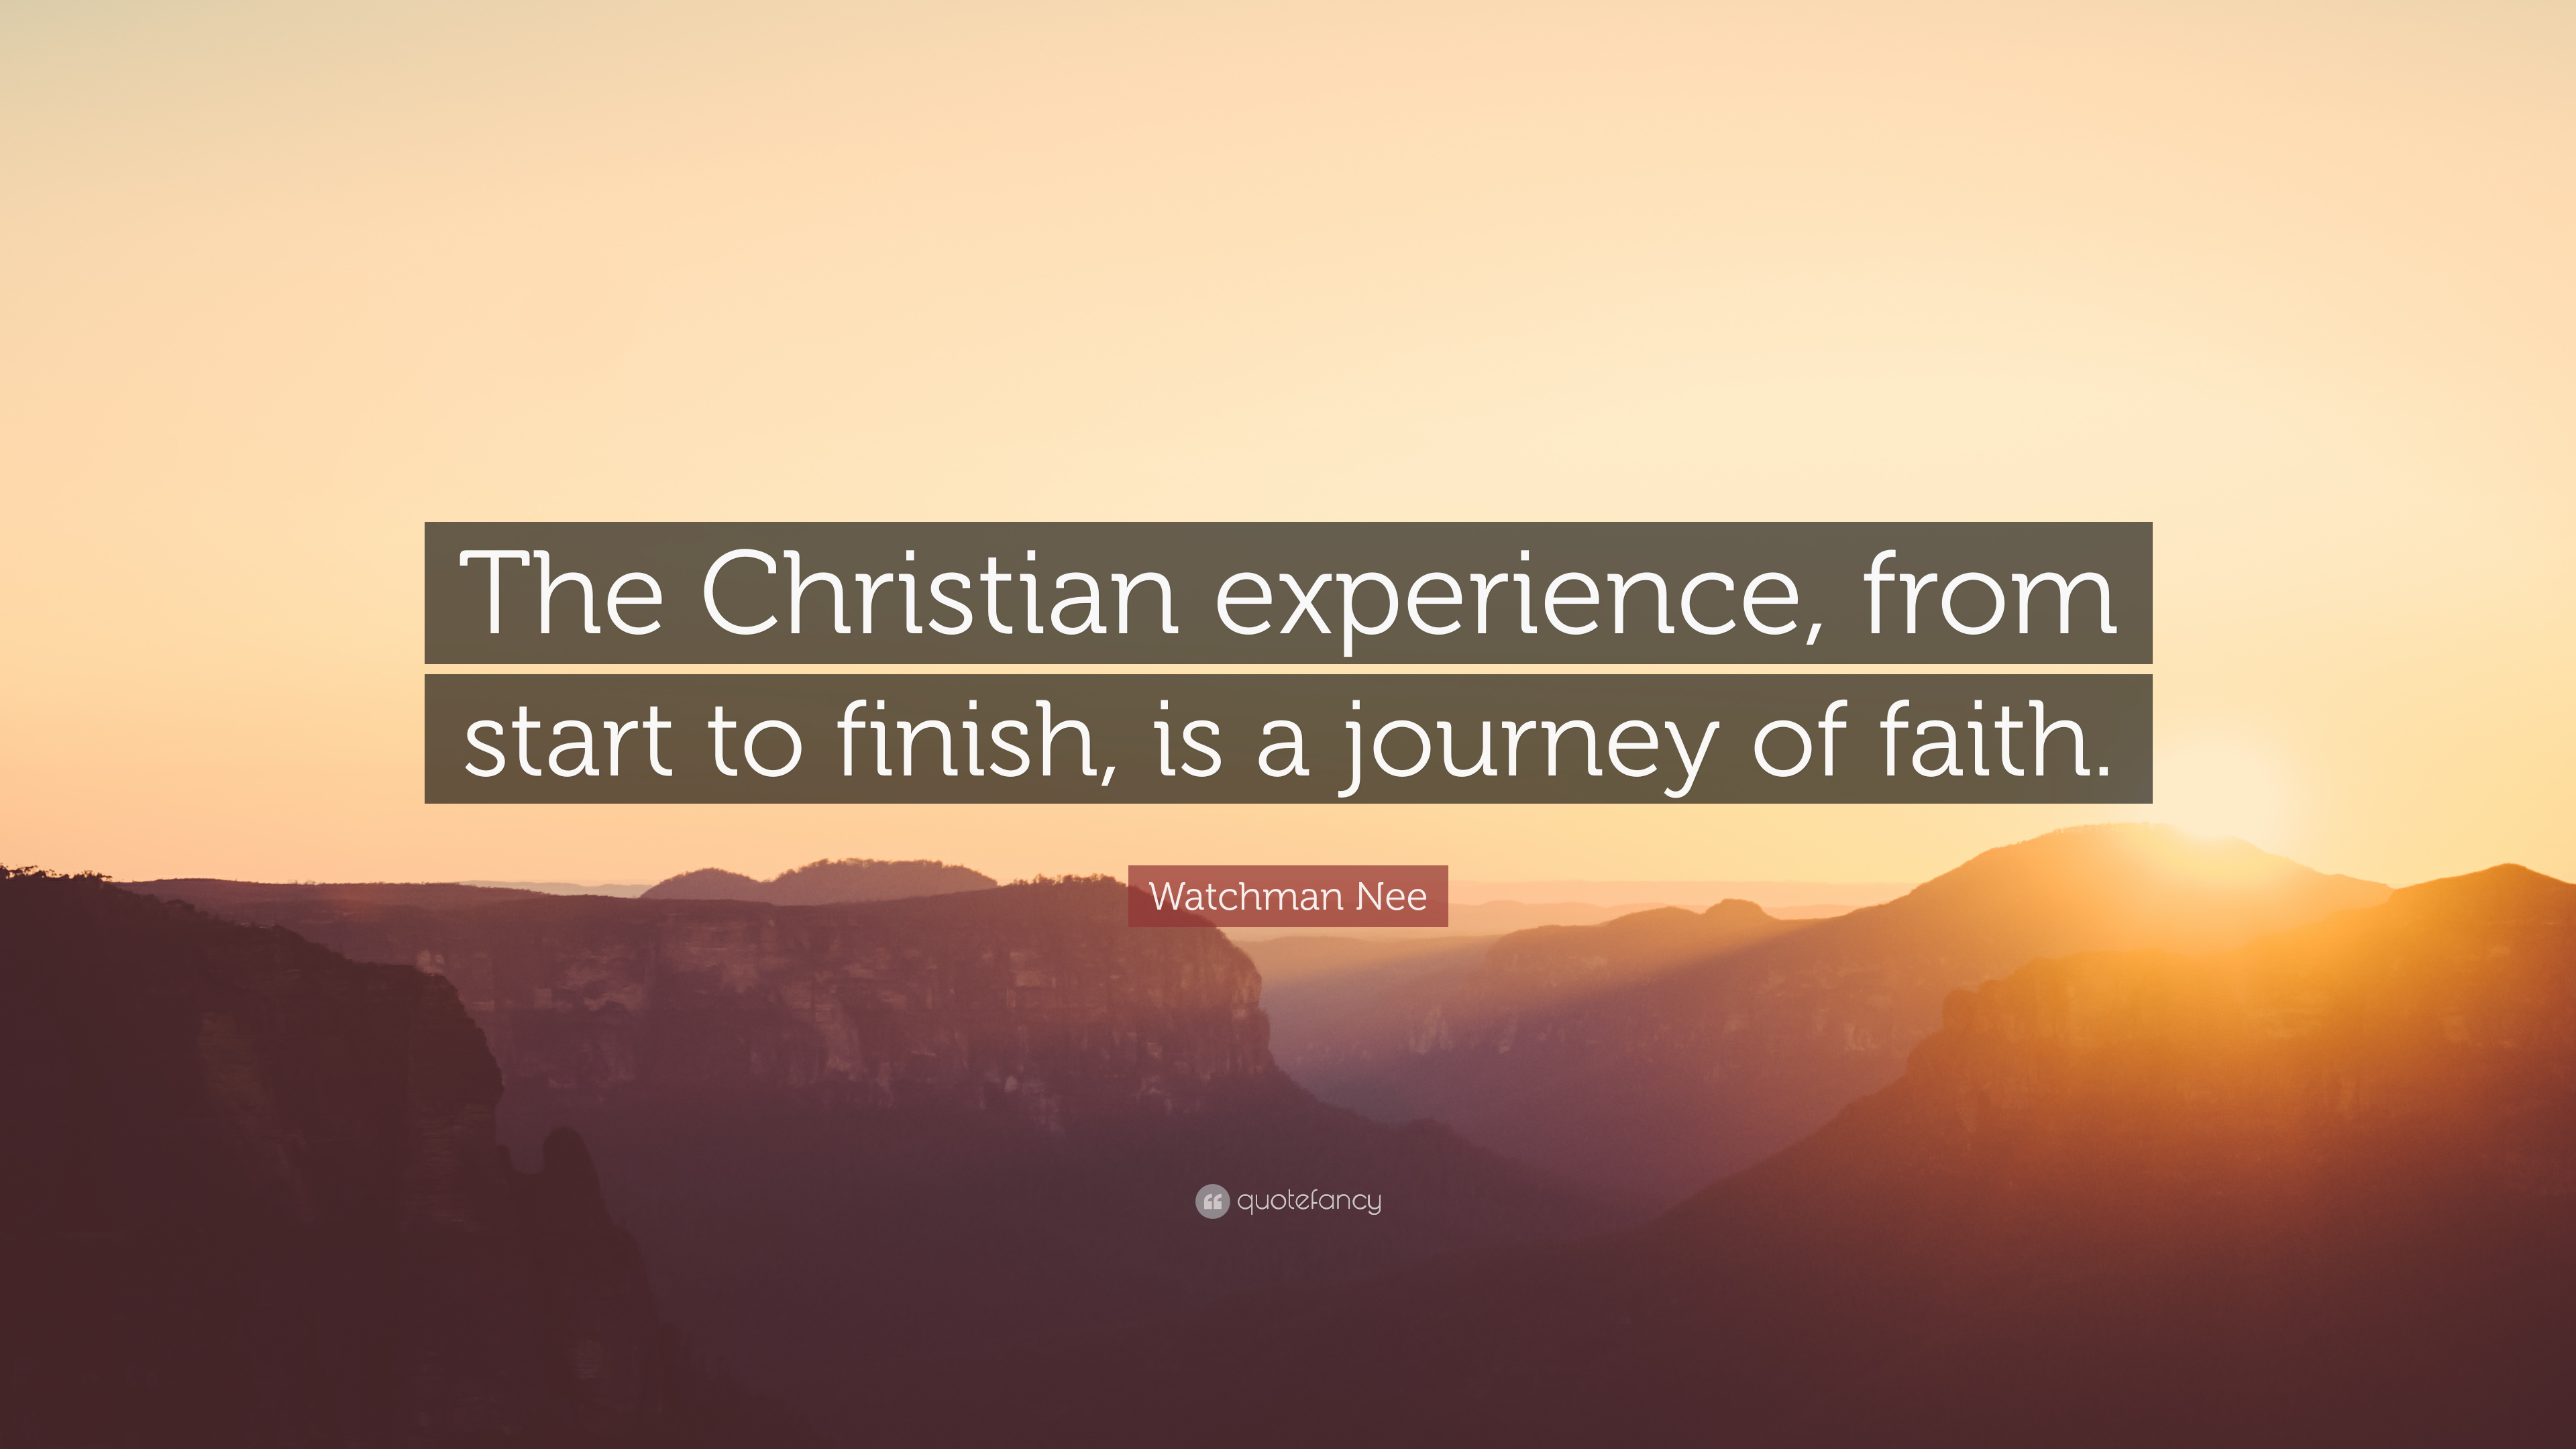 Christian Inspirational Wallpapers With Quotes Watchman Nee Quote The Christian Experience From Start